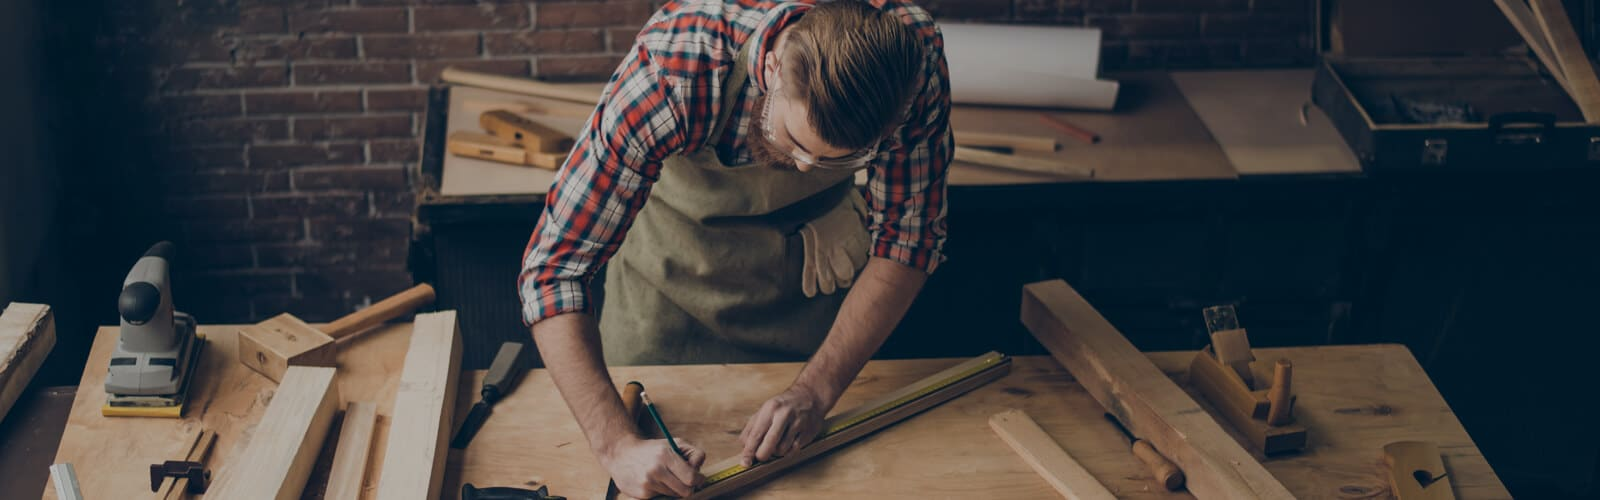 CraftCover specialists in Craft Insurance - we can offer a flexible quote tailored to your business needs. Get an instant online quote today!